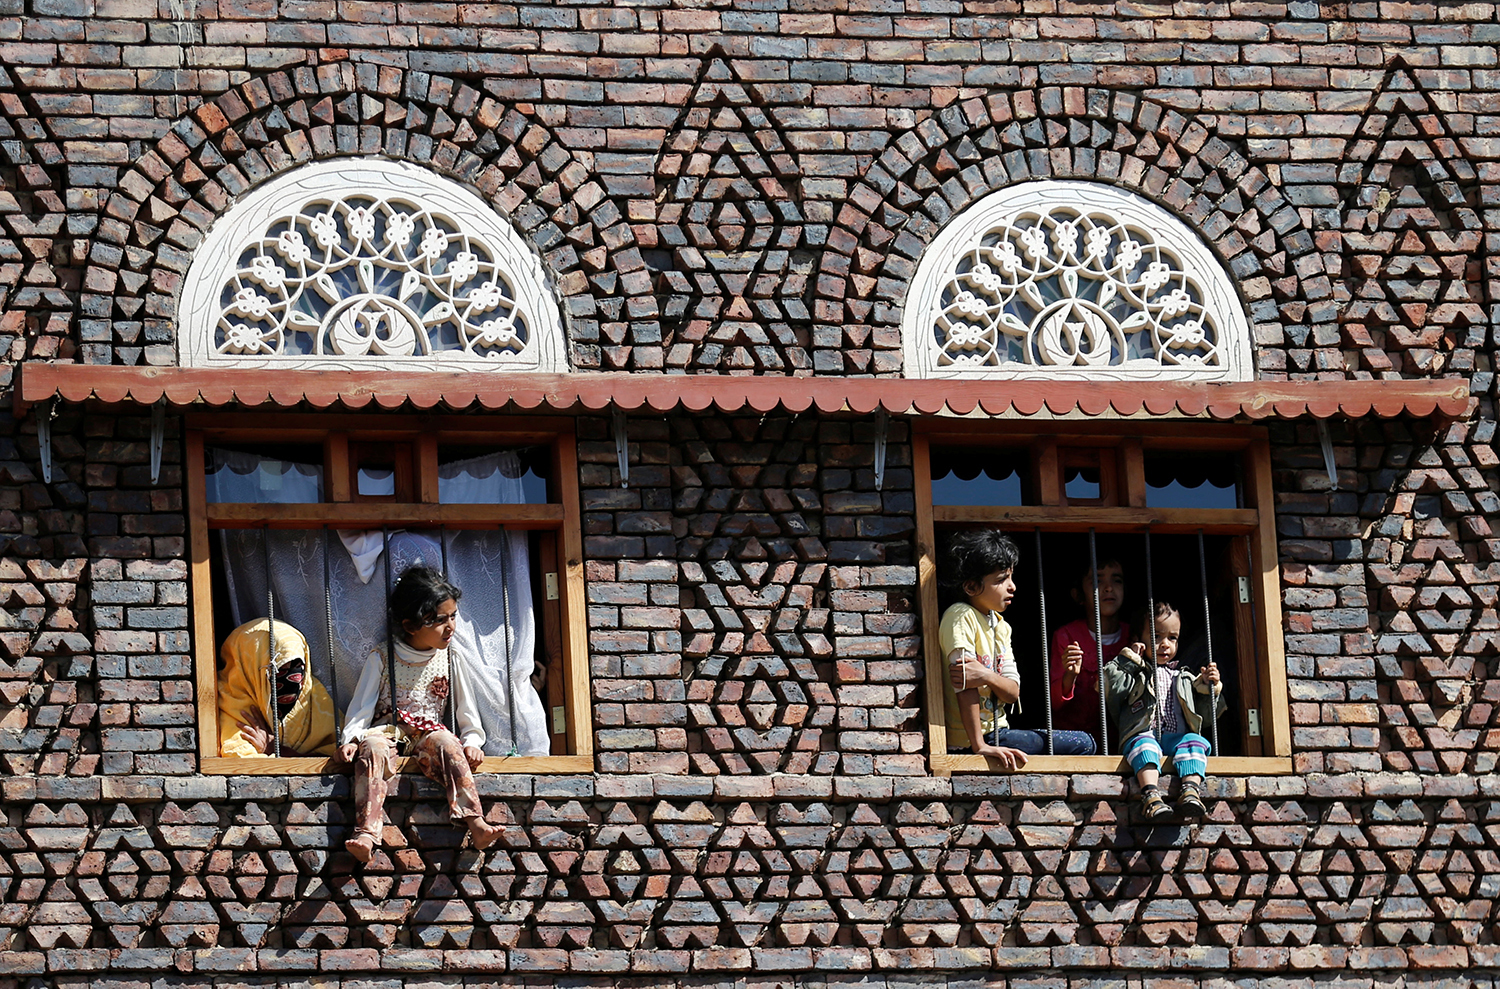 SANAA 2016-10-10 Children watch from the windows of their house as mourners pass during the funeral of Abdul Qader Helal, the mayor of Sanaa, the capital of Yemen, who was killed by an apparent Saudi-led air strike that ripped through a wake attended by some of the country's top political and security officials in Sanaa, October 10, 2016. REUTERS/Khaled Abdullah Photo: / REUTERS / TT / kod 72000